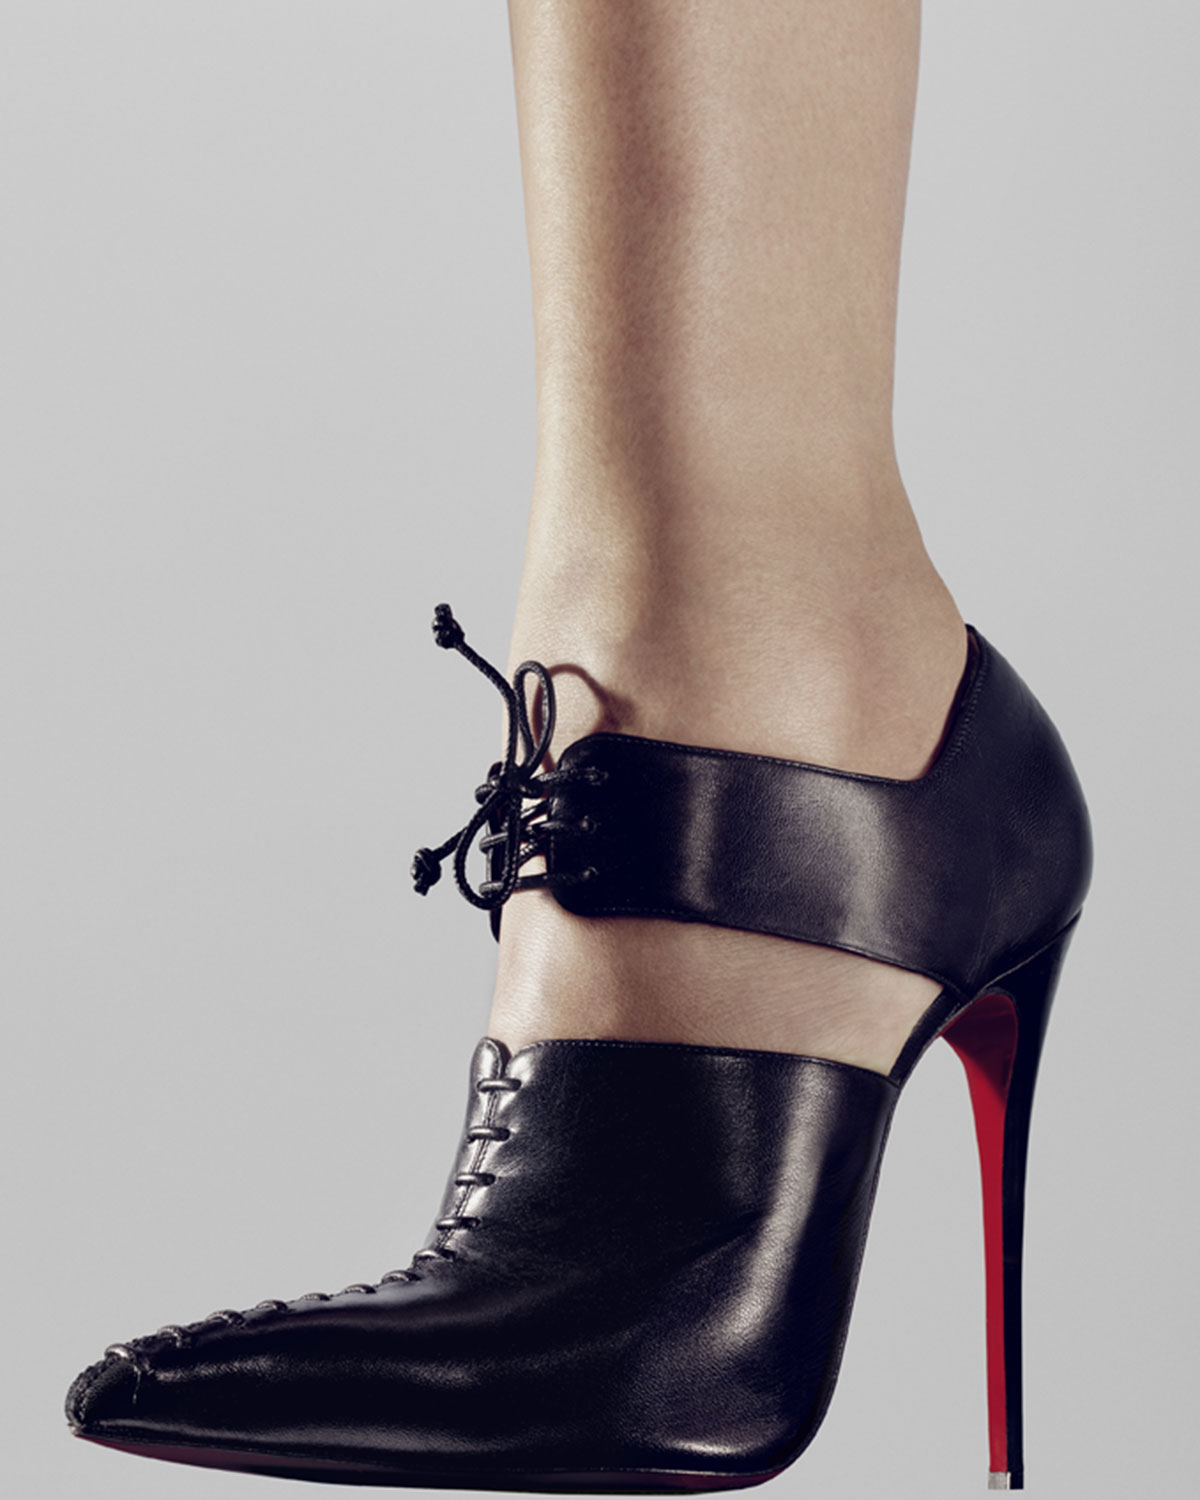 7f84c69130 Christian Louboutin Corsita Cutout Leather Red Sole Ankle Boot in Black -  Lyst